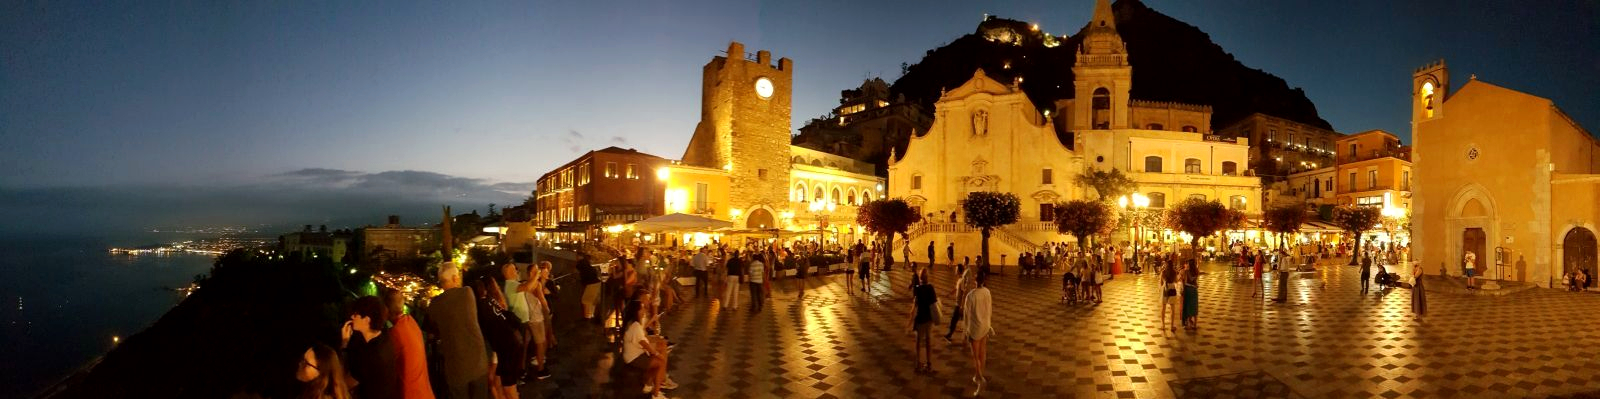 destination management company - italy destinations - Taormina - sicily must see locations